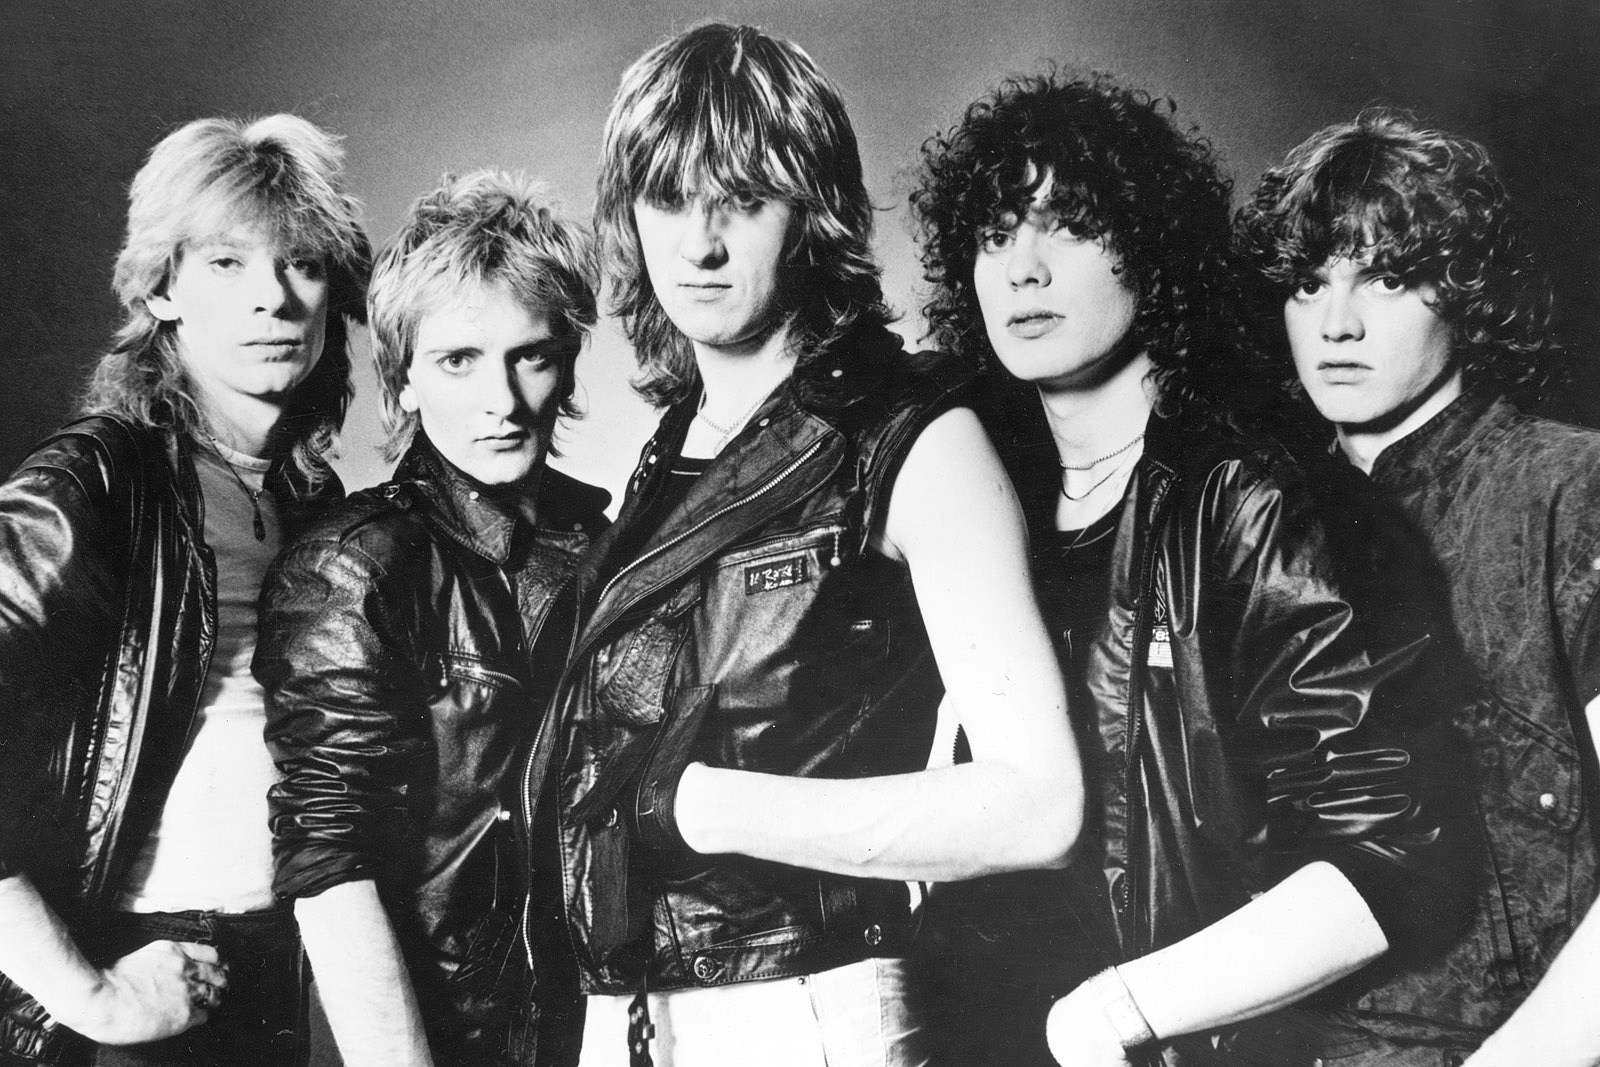 Art for Pour Some Sugar On Me by Def Leppard